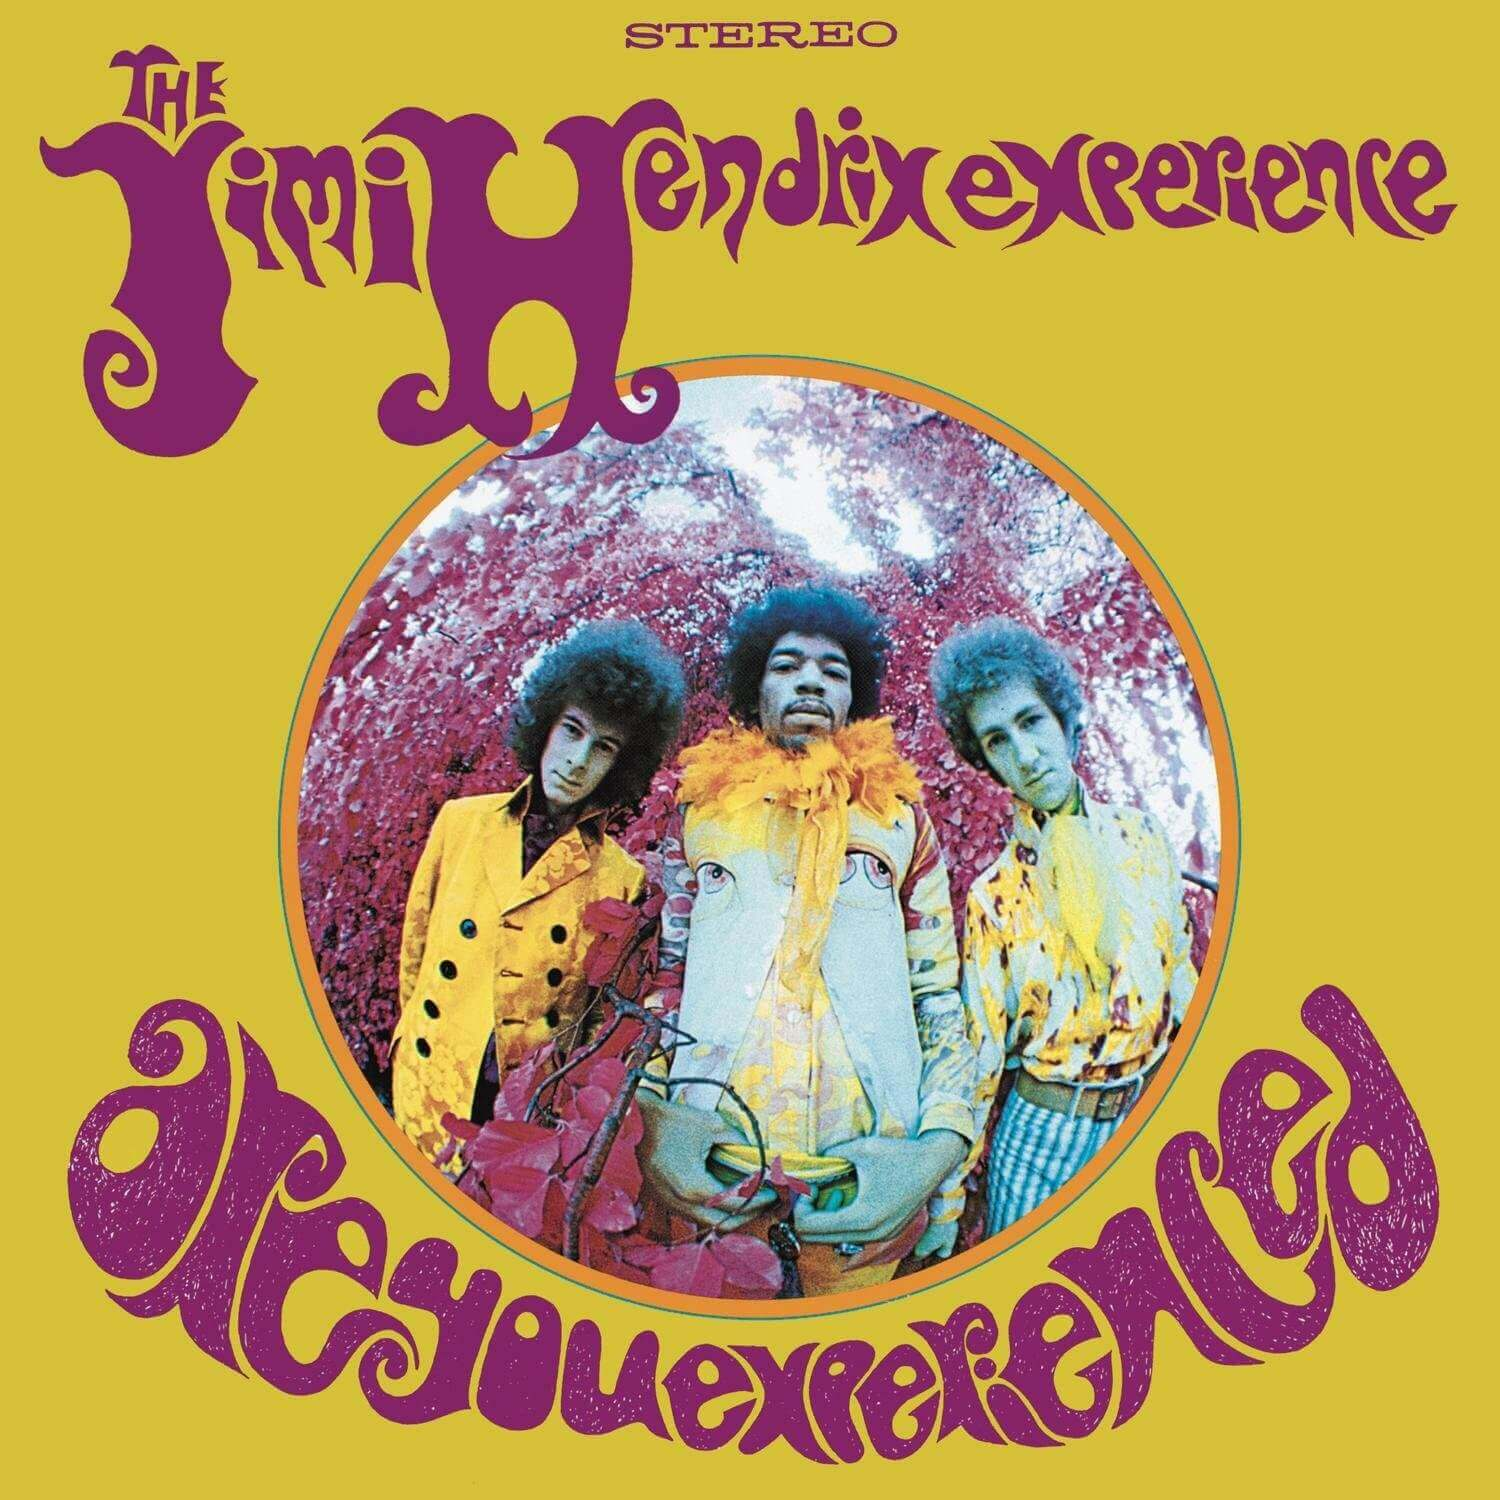 What is Fisheye Lens - Jimmy Hendrix Album Cover